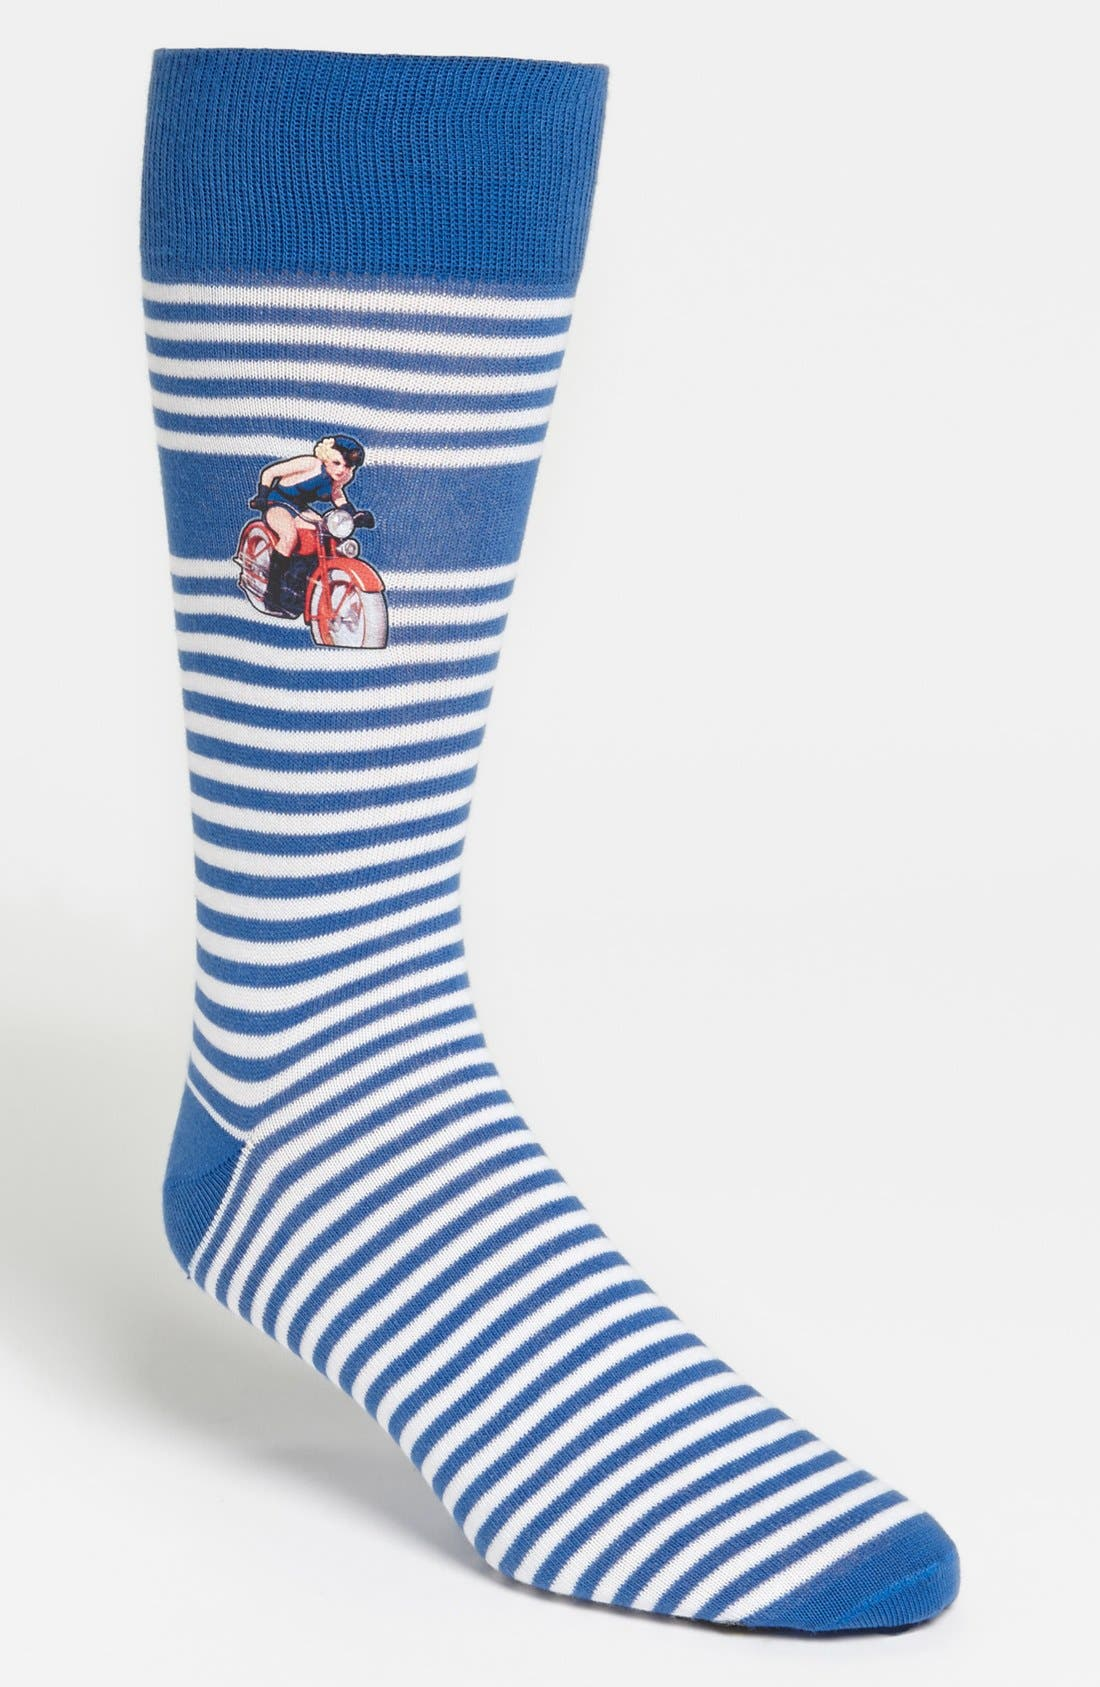 Main Image - Lorenzo Uomo 'Heat Transfer' Socks